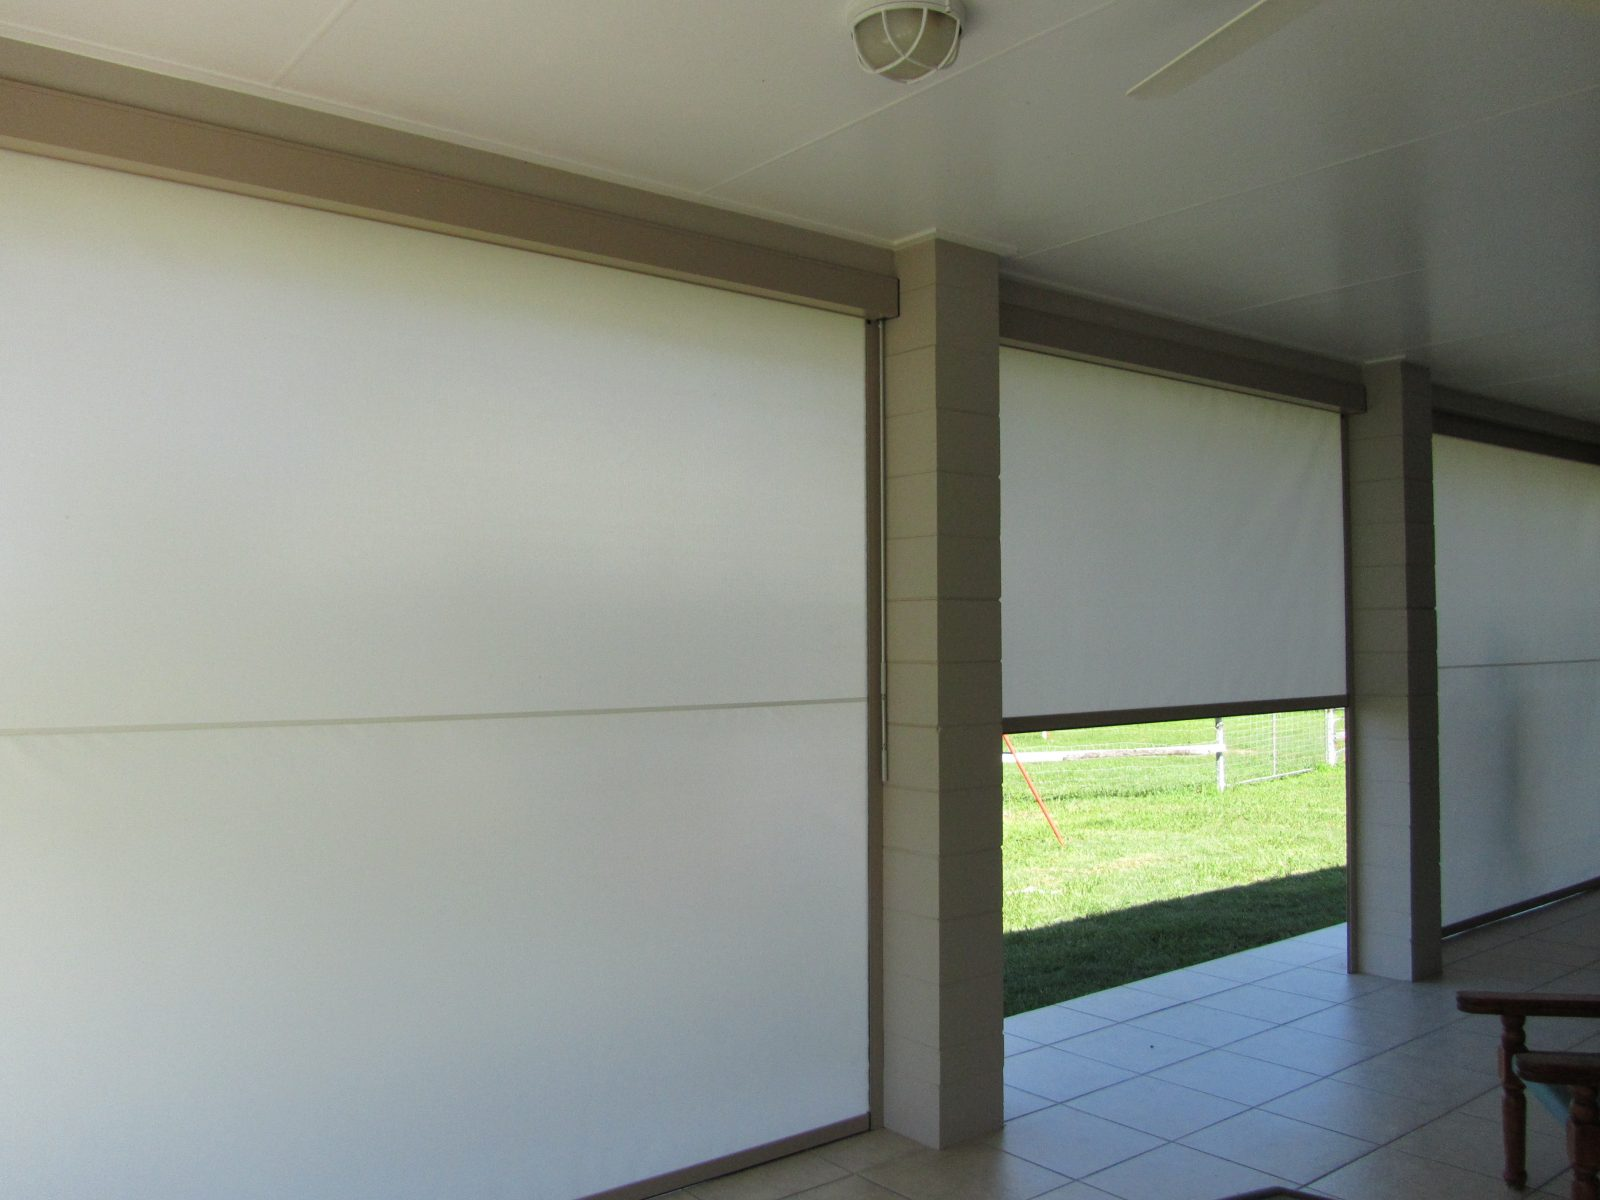 Crawley Blinds Zipscreen Fabric Roll Up Patio Blinds